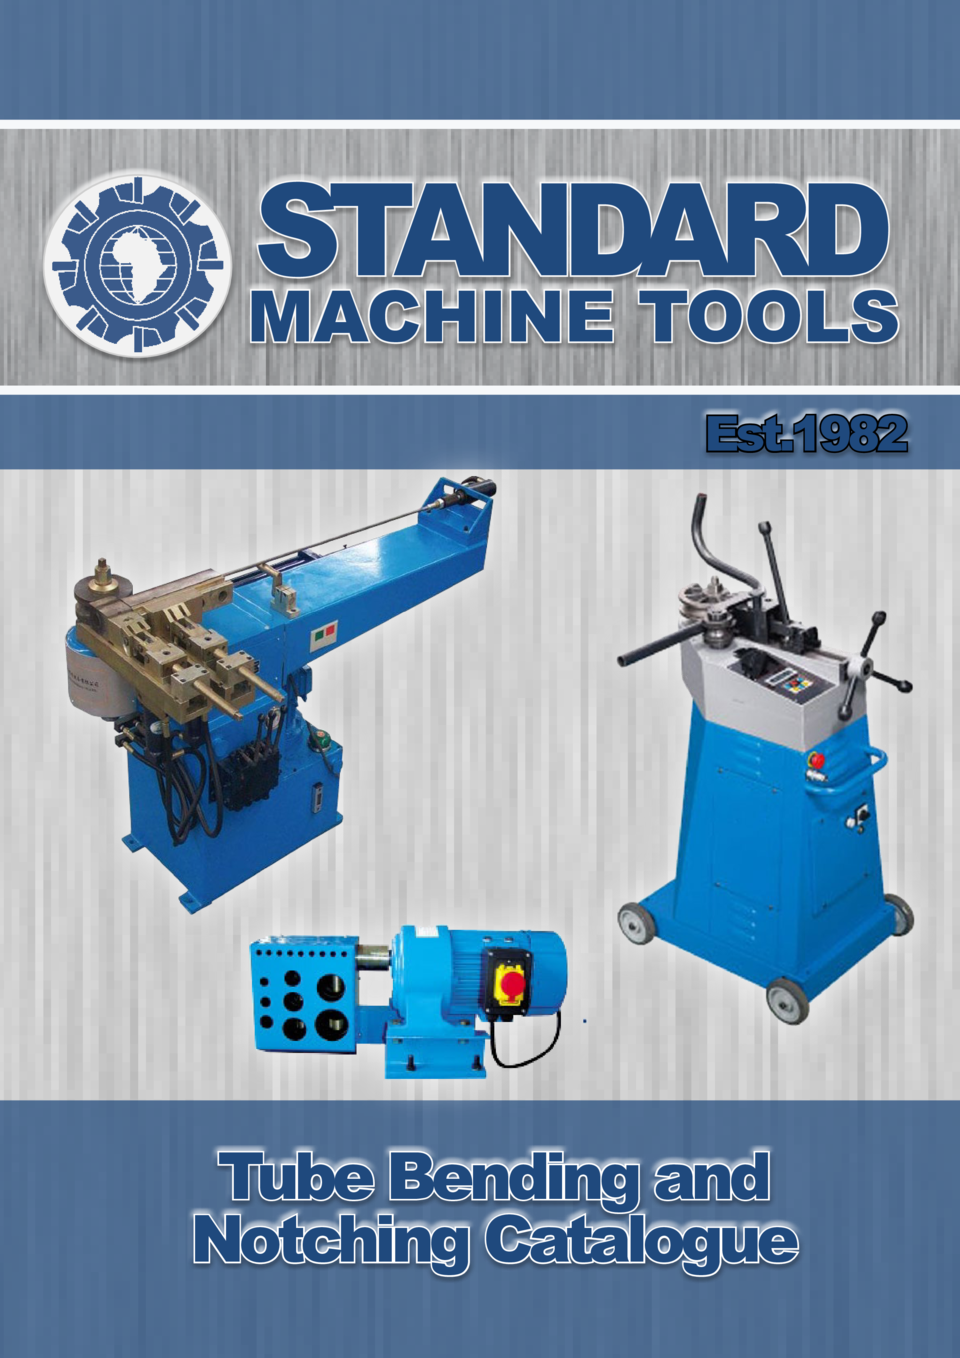 STANDARD  MACHINE TOOLS Est.1982  Tube Bending and Notching Catalogue